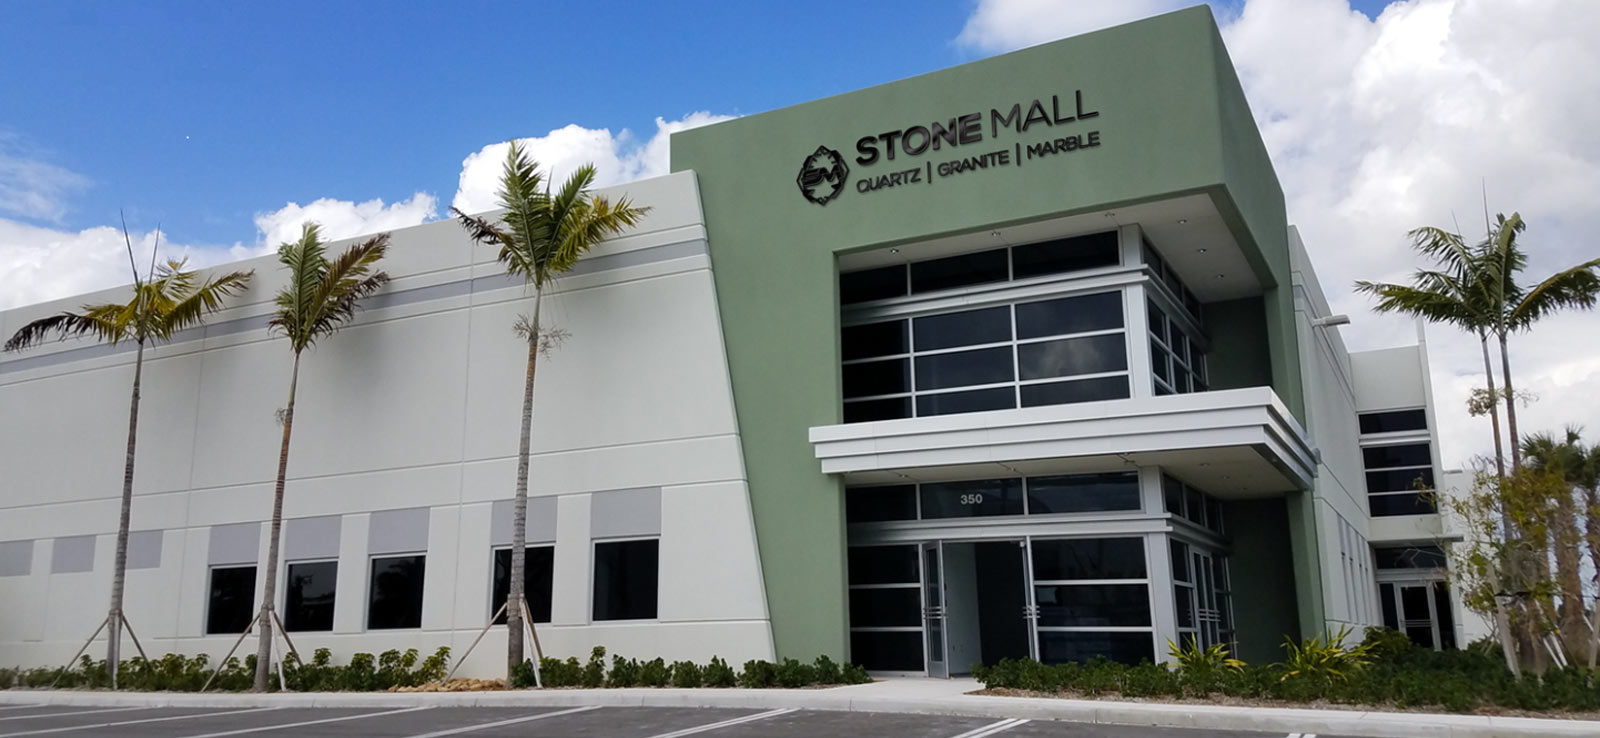 Stone Maill store exterior